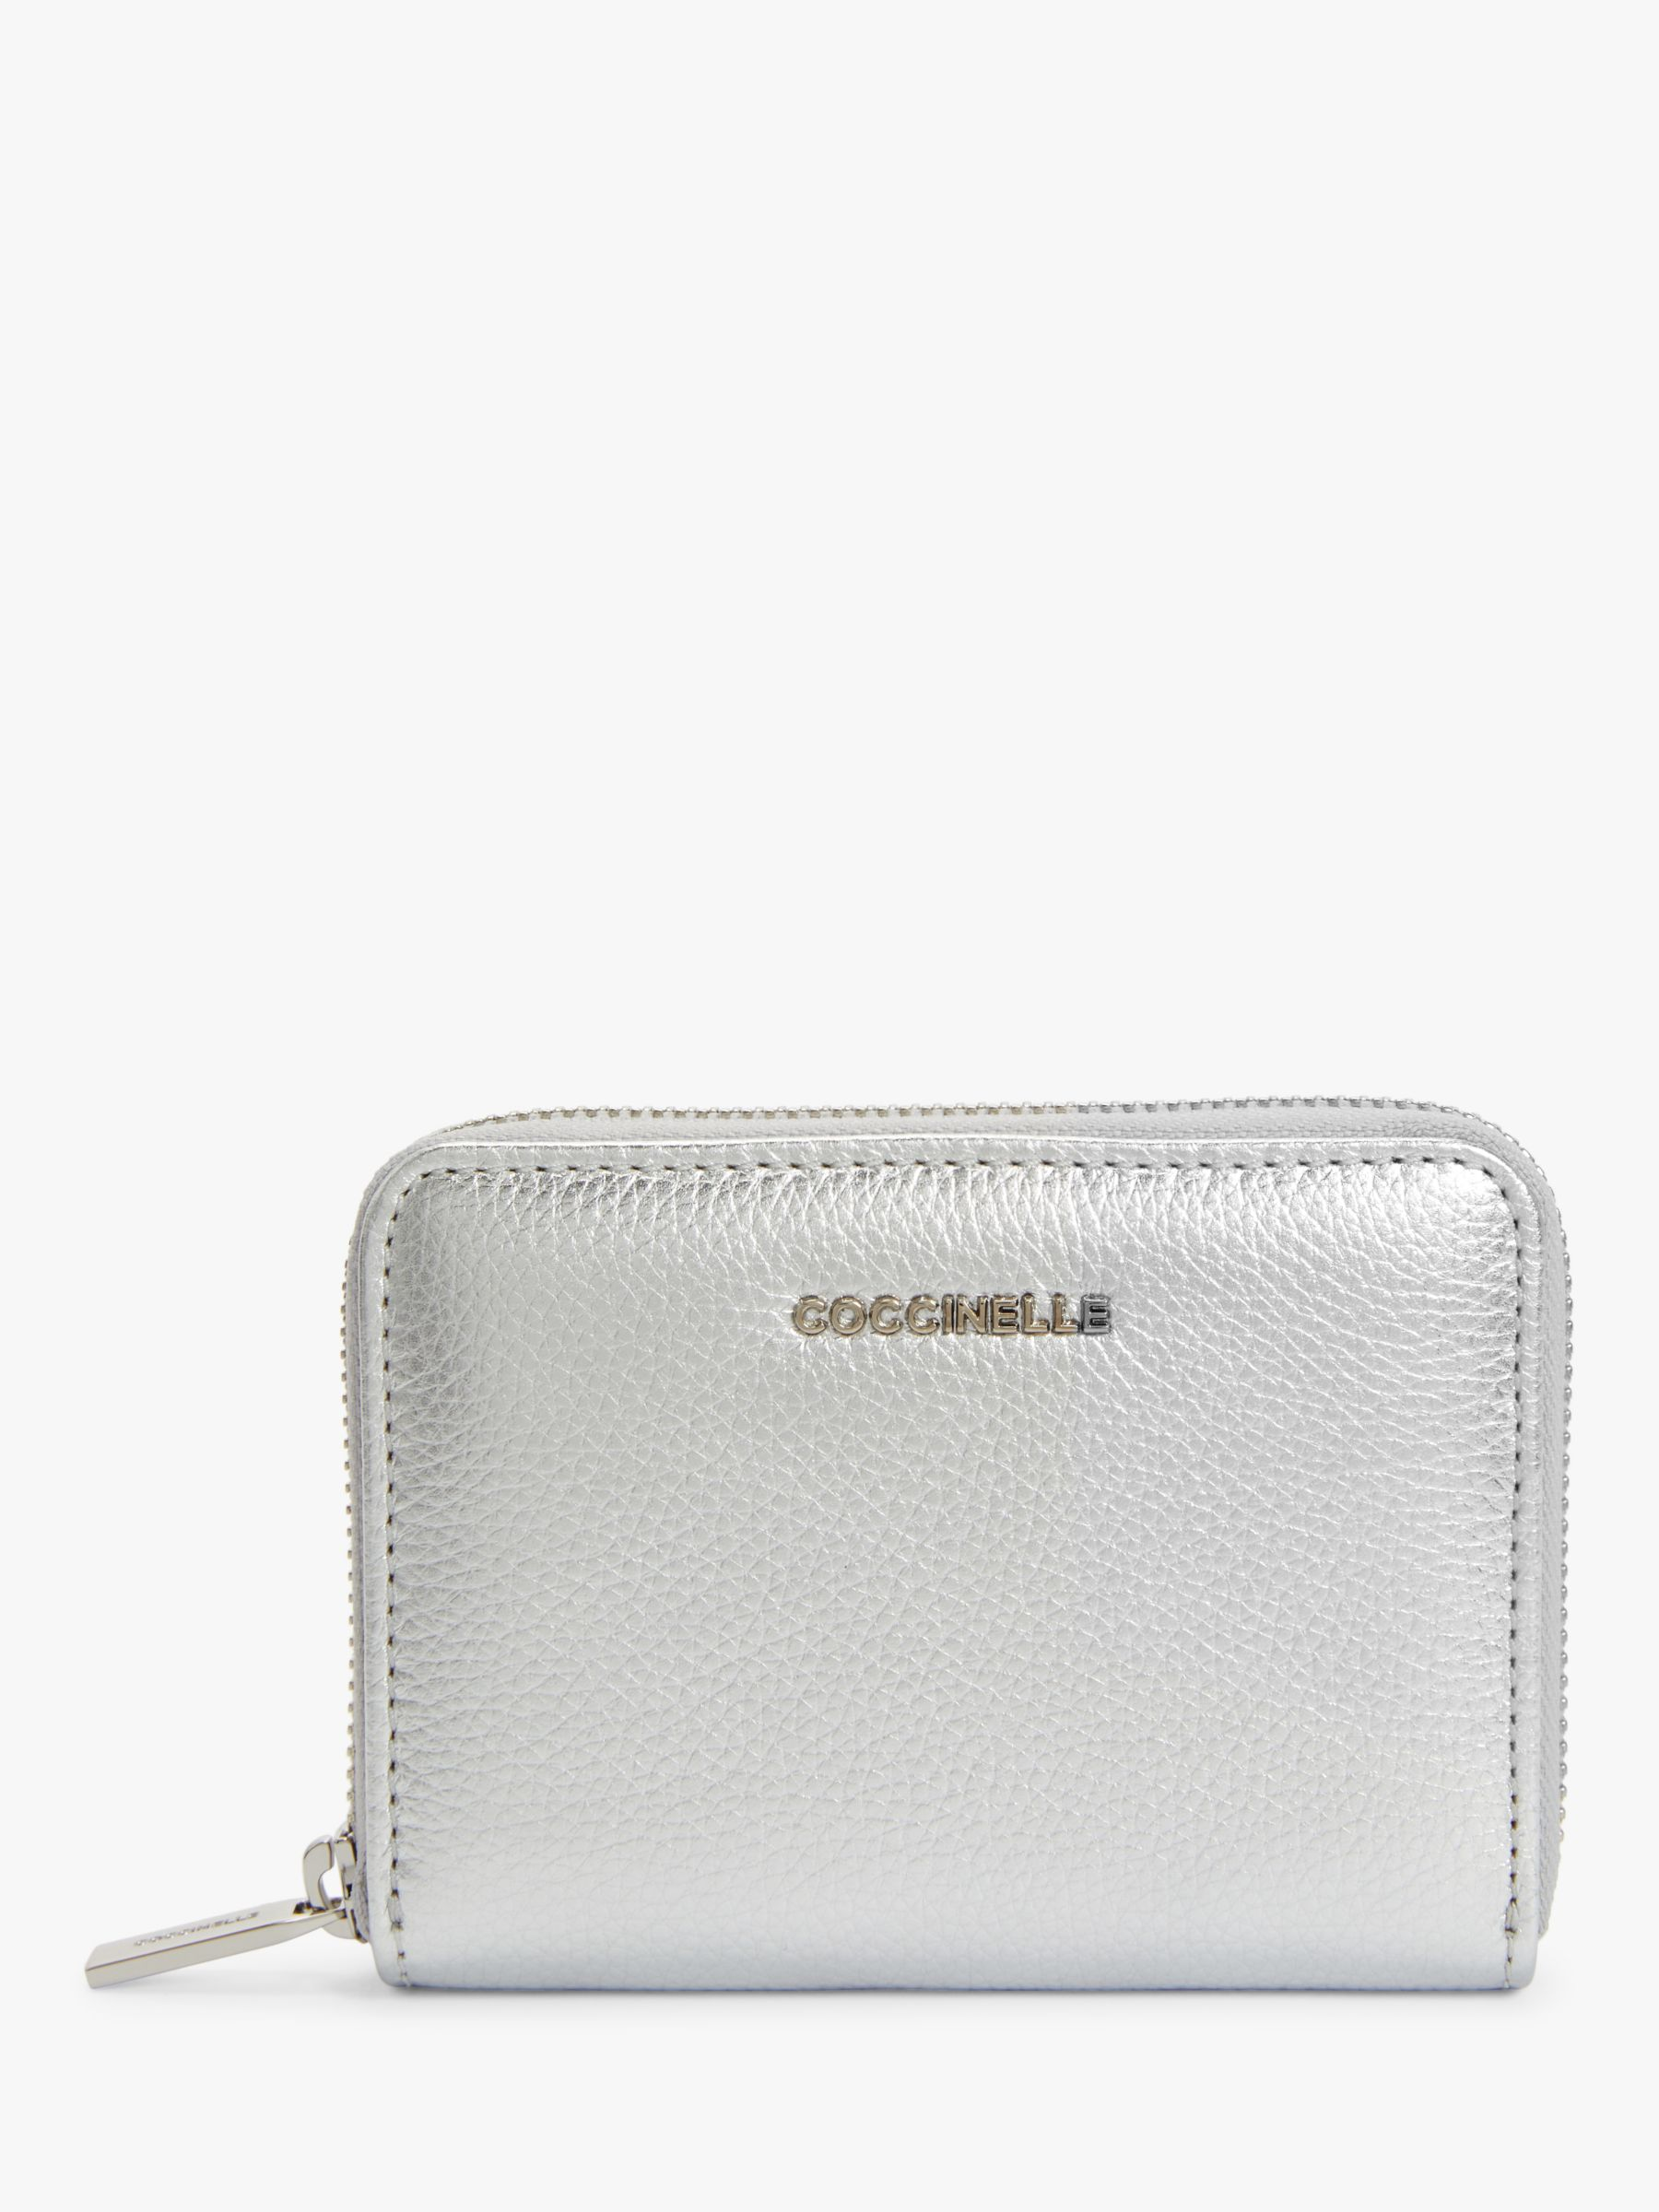 Coccinelle Coccinelle Metallic Small Soft Leather Purse